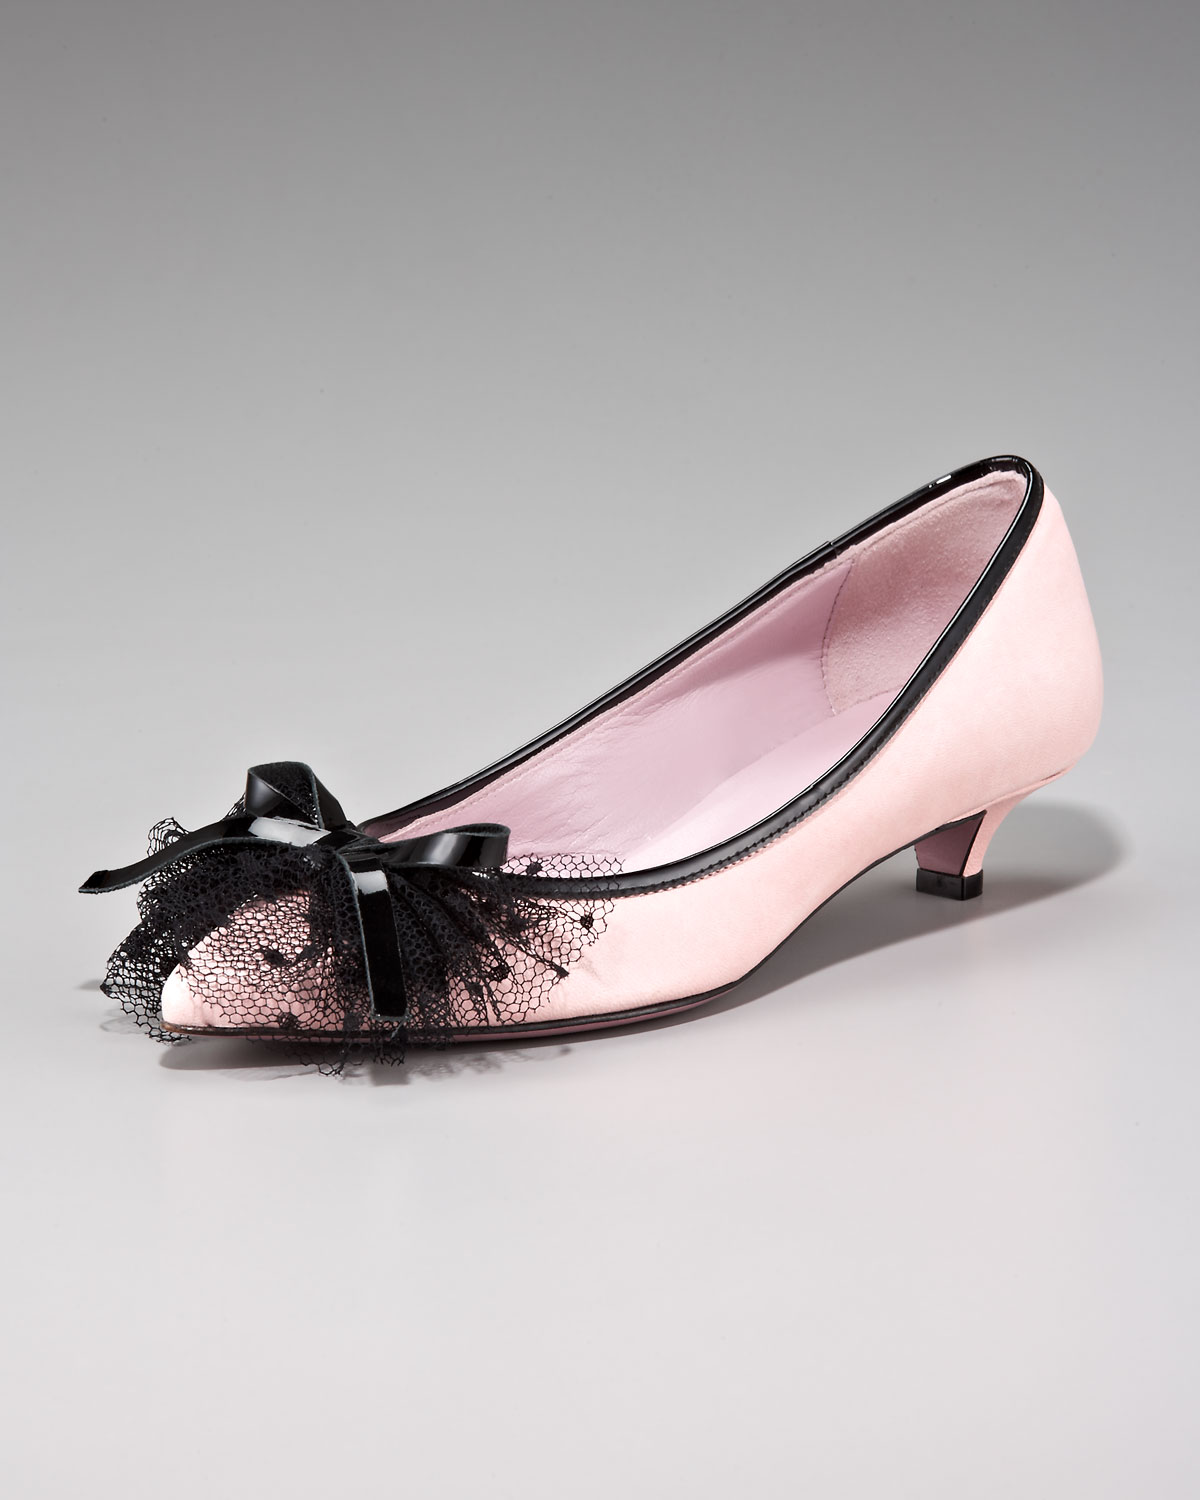 Red valentino Netting & Bow Kitten-heel Pump in Pink | Lyst